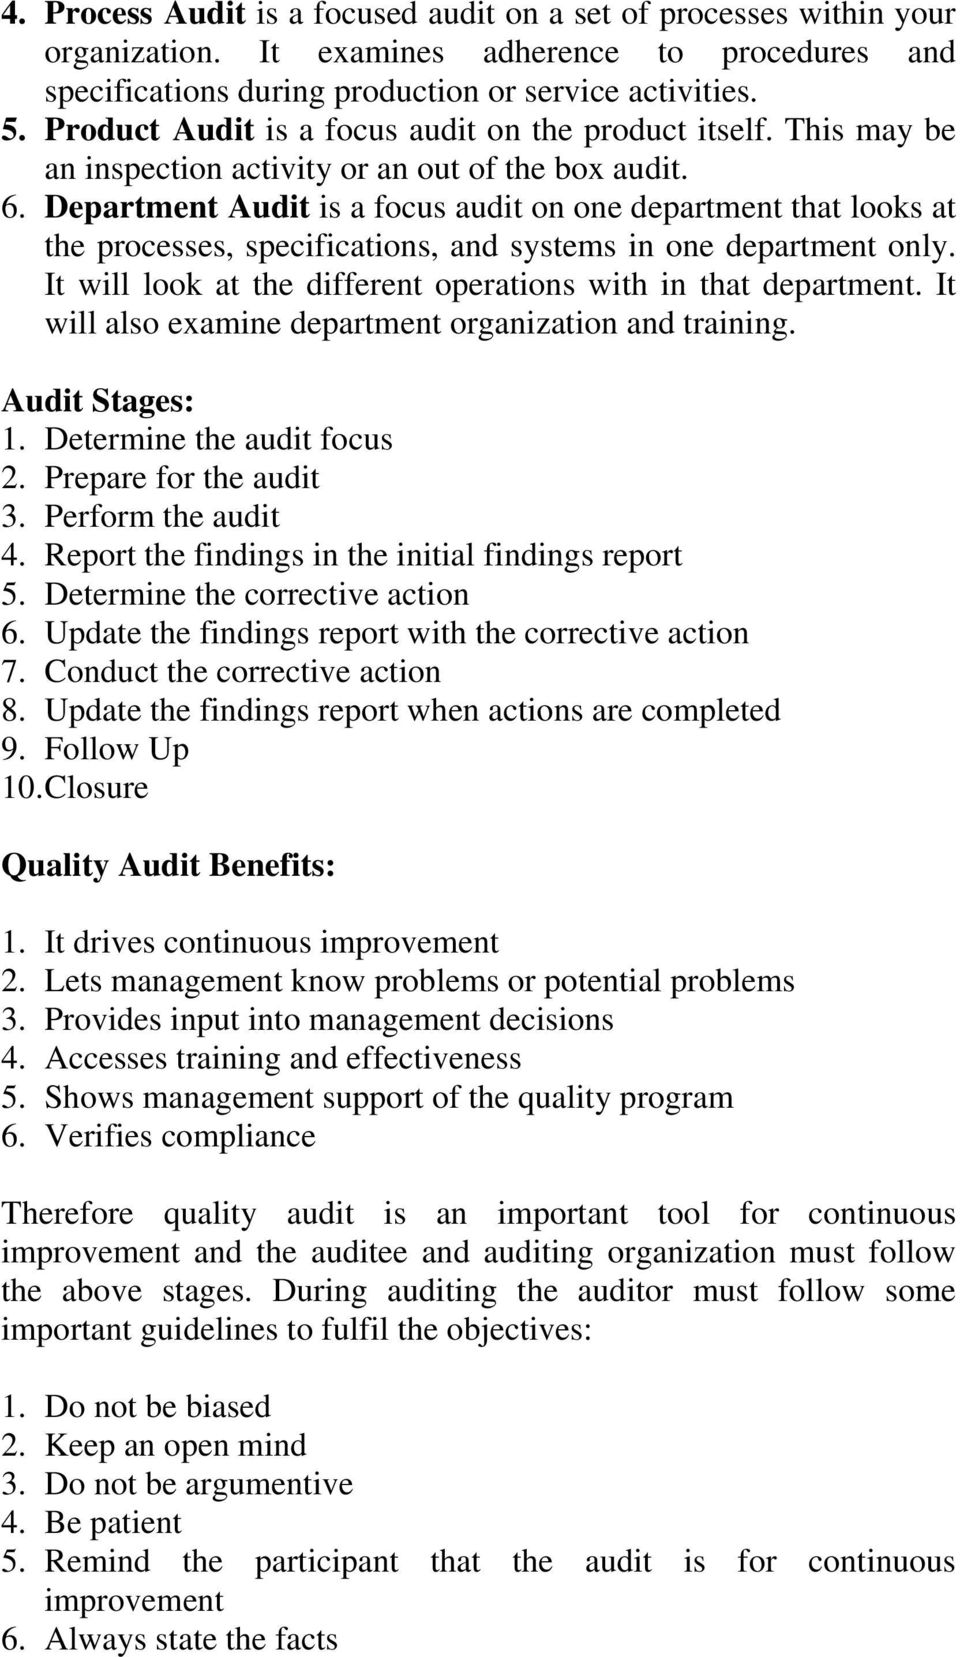 Department Audit is a focus audit on one department that looks at the processes, specifications, and systems in one department only. It will look at the different operations with in that department.